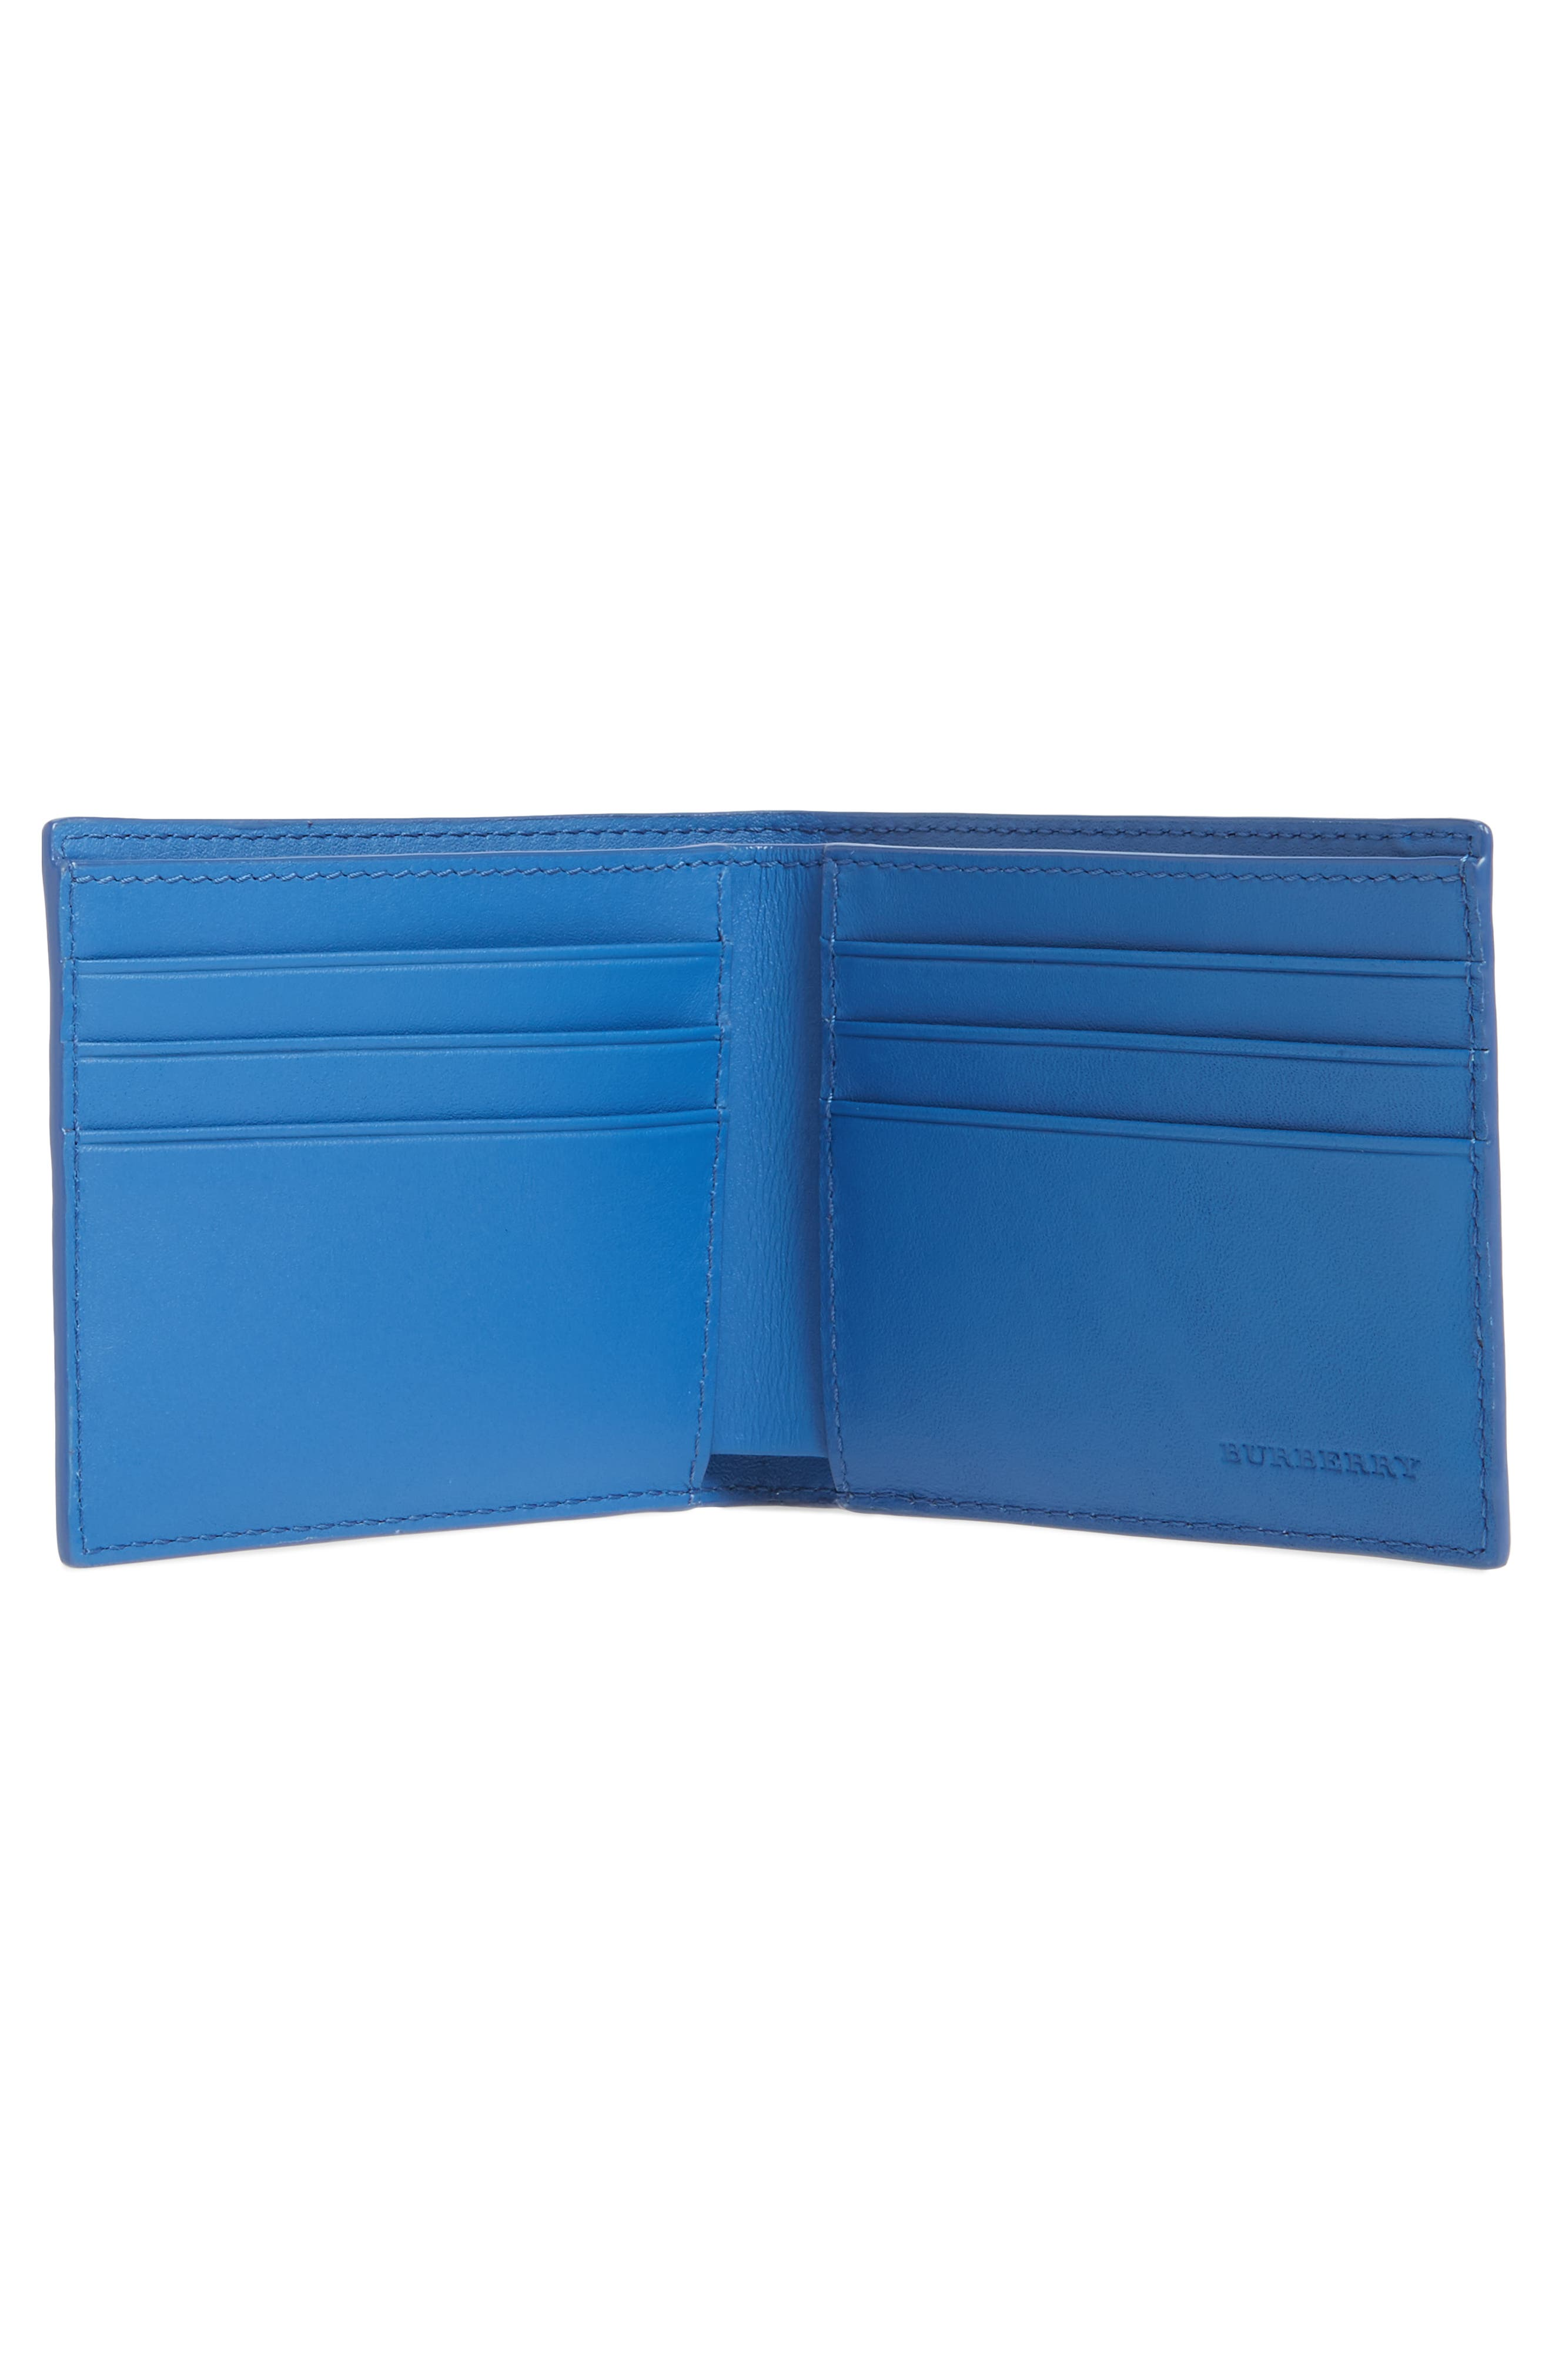 Check Faux Leather Wallet,                             Alternate thumbnail 2, color,                             Navy/ Blue